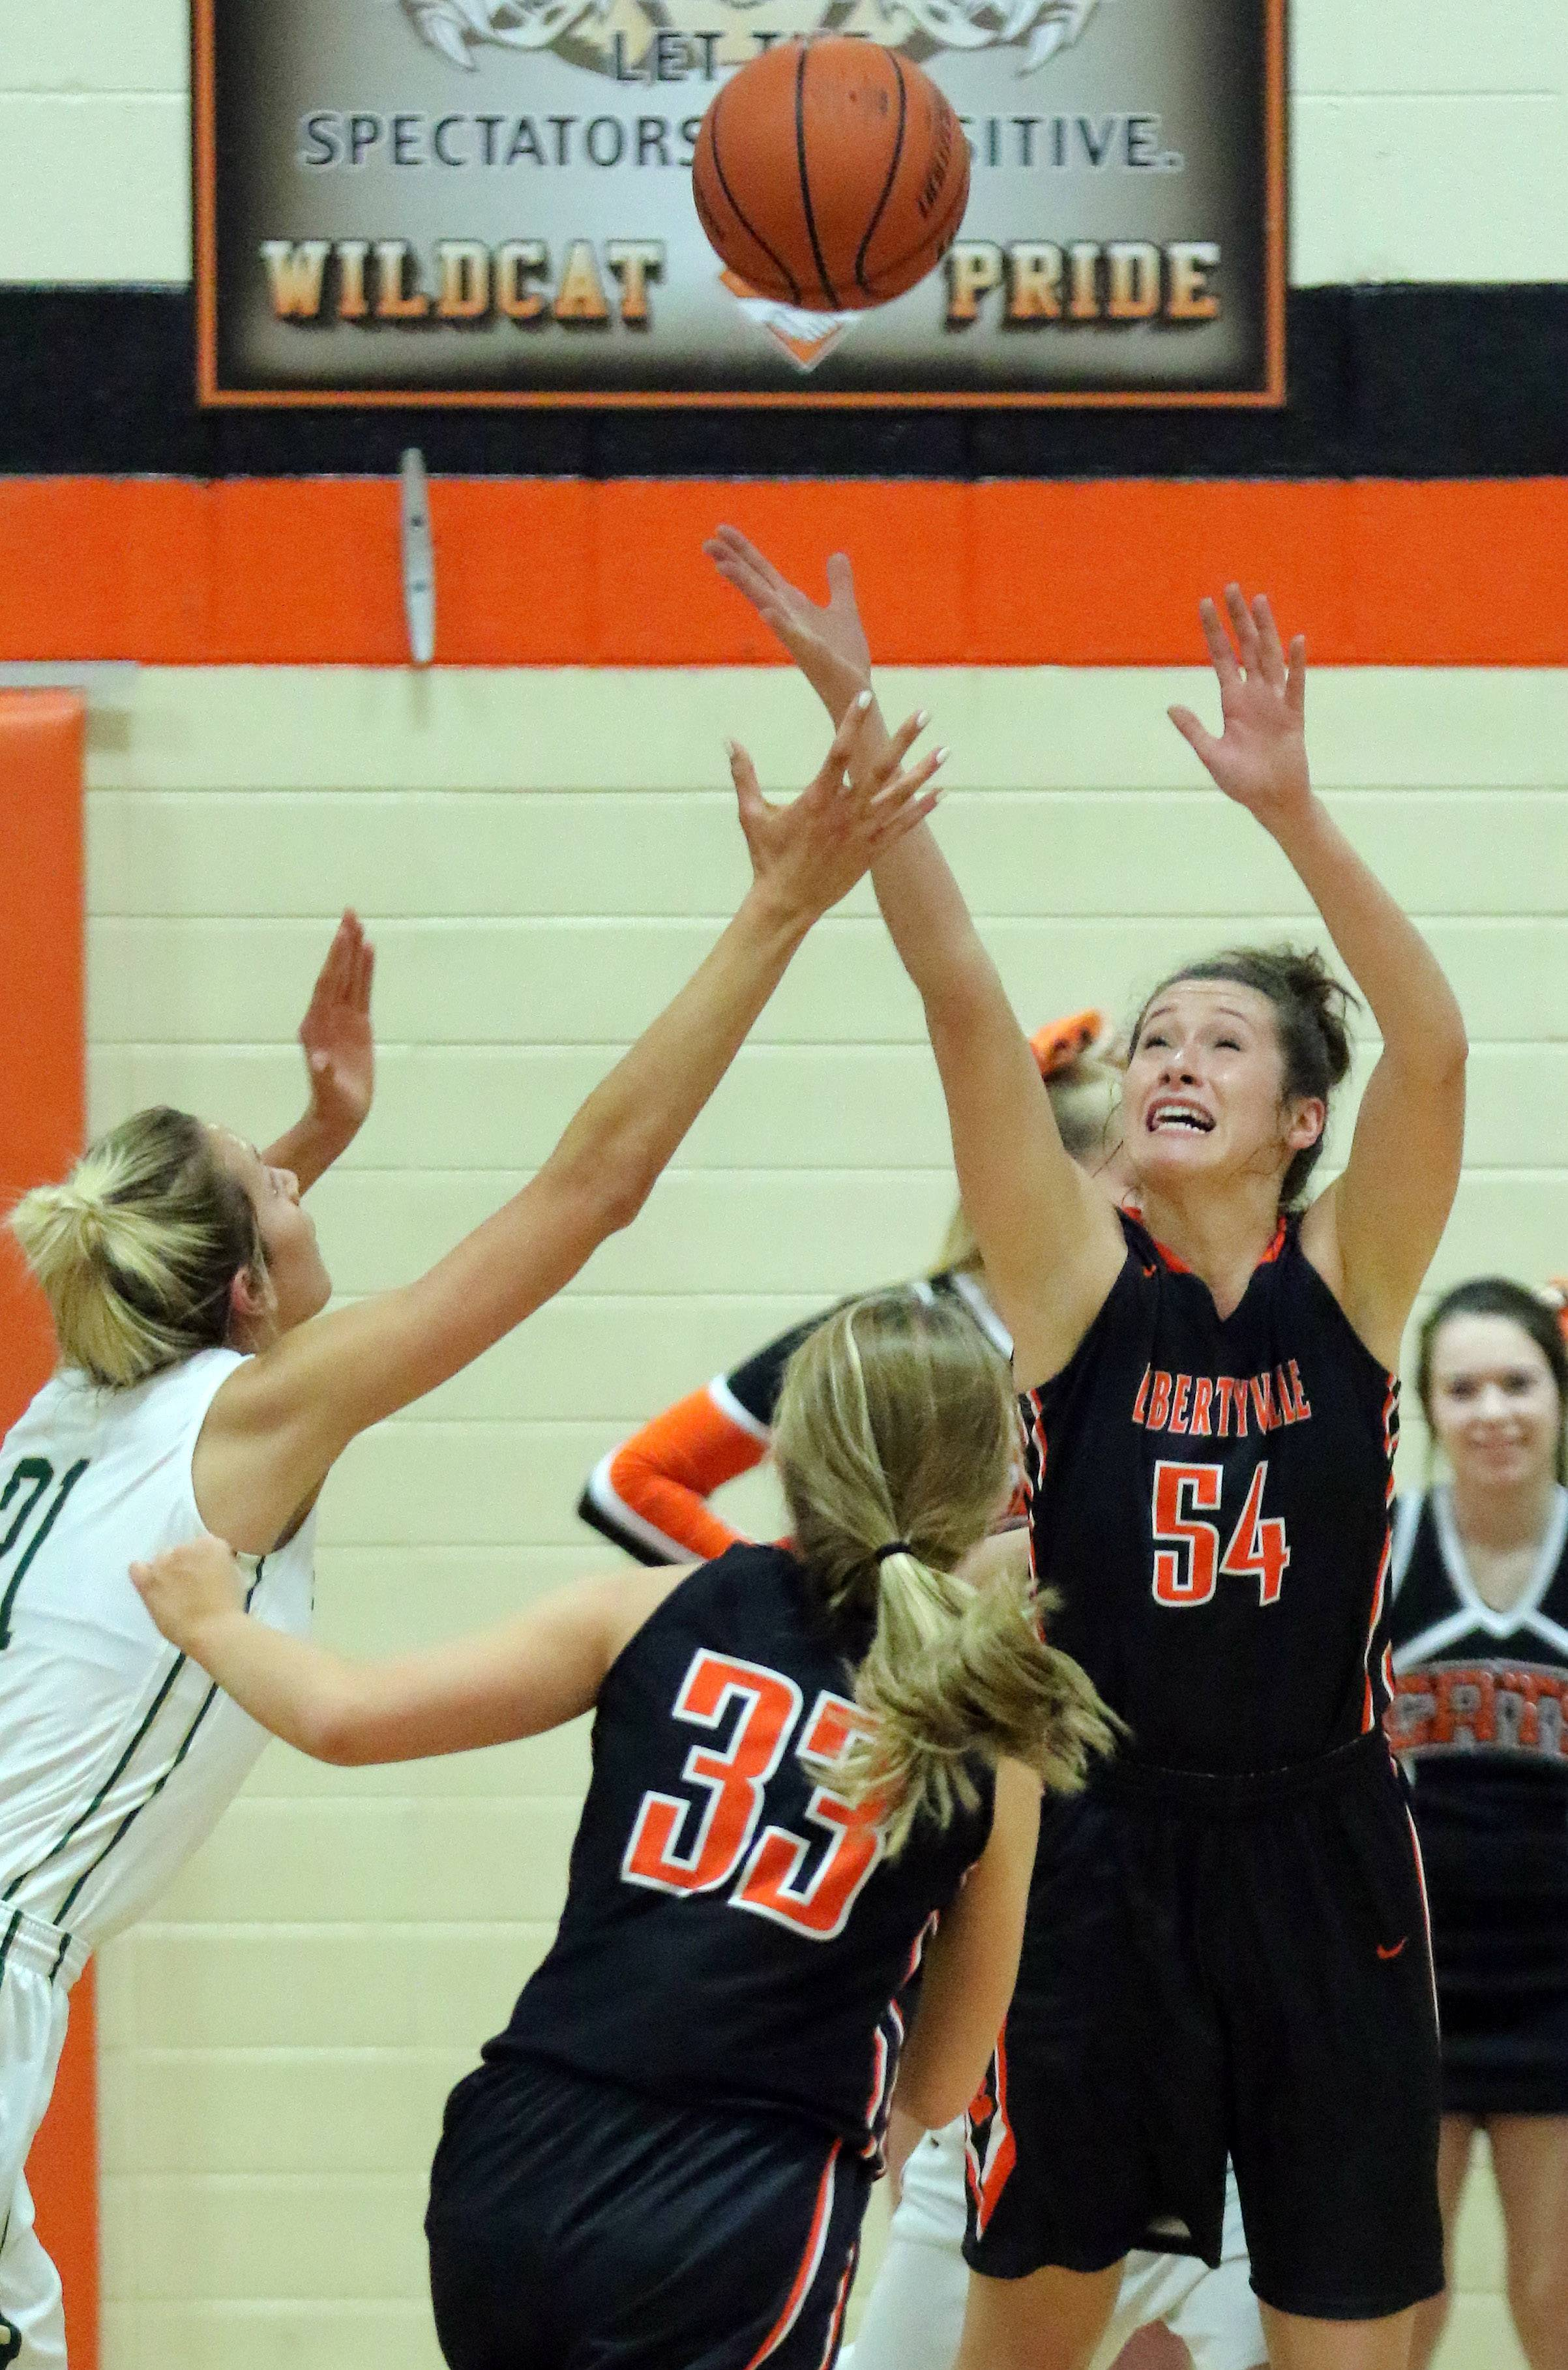 Libertyville's Claire Keefe, right, and Fremd's Grace Tworek battle for a rebound during Class 4A sectional semifinal play Monday at Libertyville.